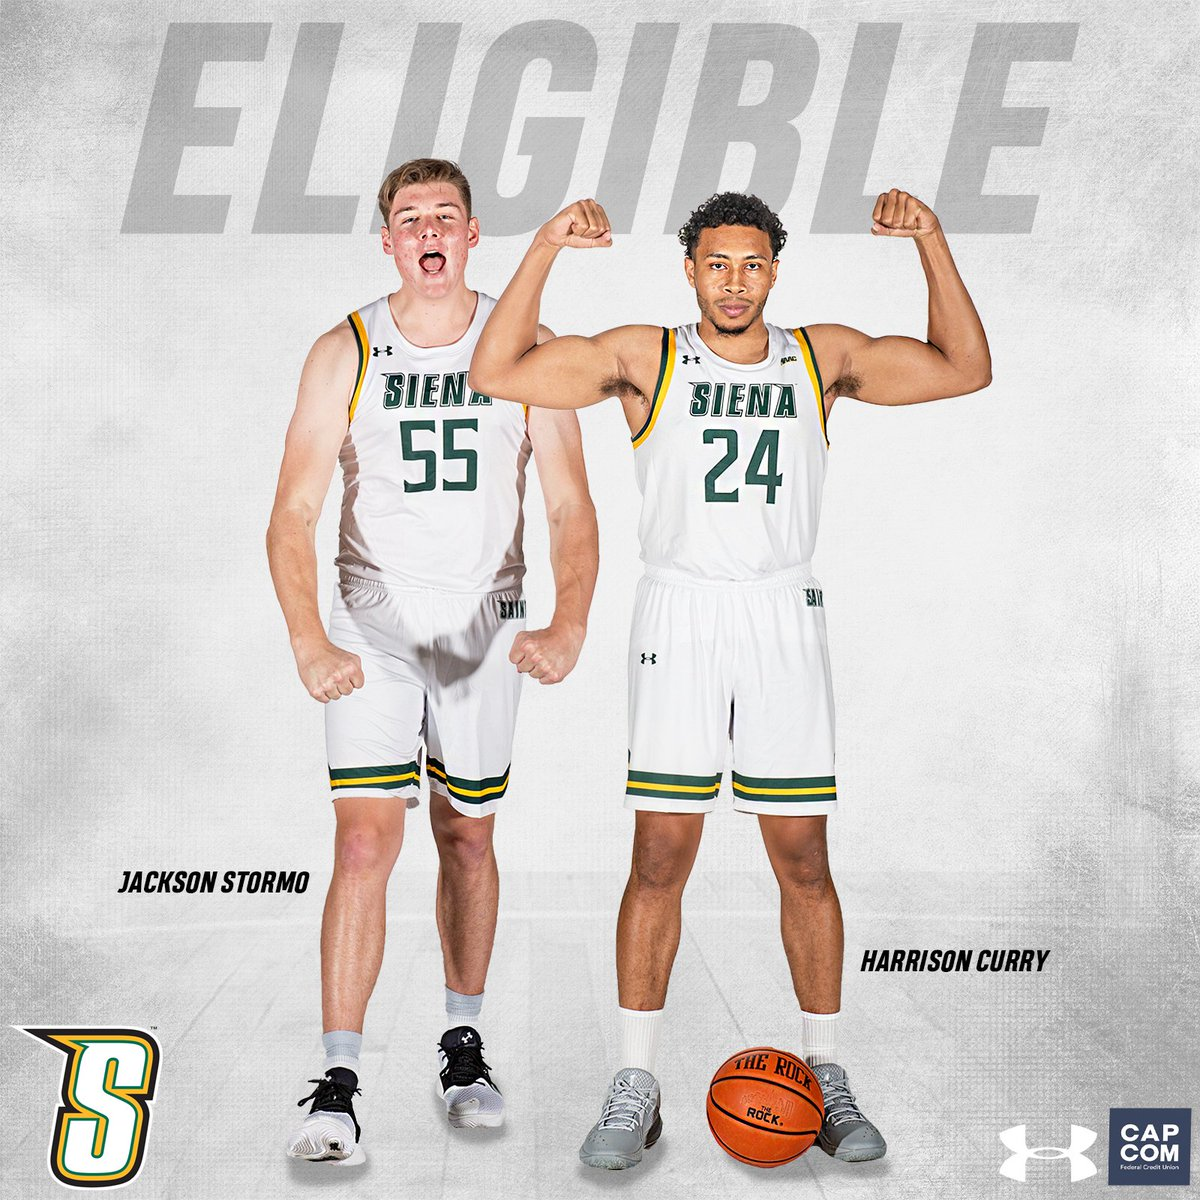 𝐄𝐋𝐈𝐆𝐈𝐁𝐈𝐋𝐈𝐓𝐘 𝙂𝙍𝘼𝙉𝙏𝙀𝘿 Transfers @HCurry_24 and @JacksonStormo have been approved waivers by the NCAA, and are immediately eligible to compete for the #SienaSaints in 2⃣0⃣2⃣0⃣-2⃣1⃣ #MarchOn | #Attack | #Finish | #EAT